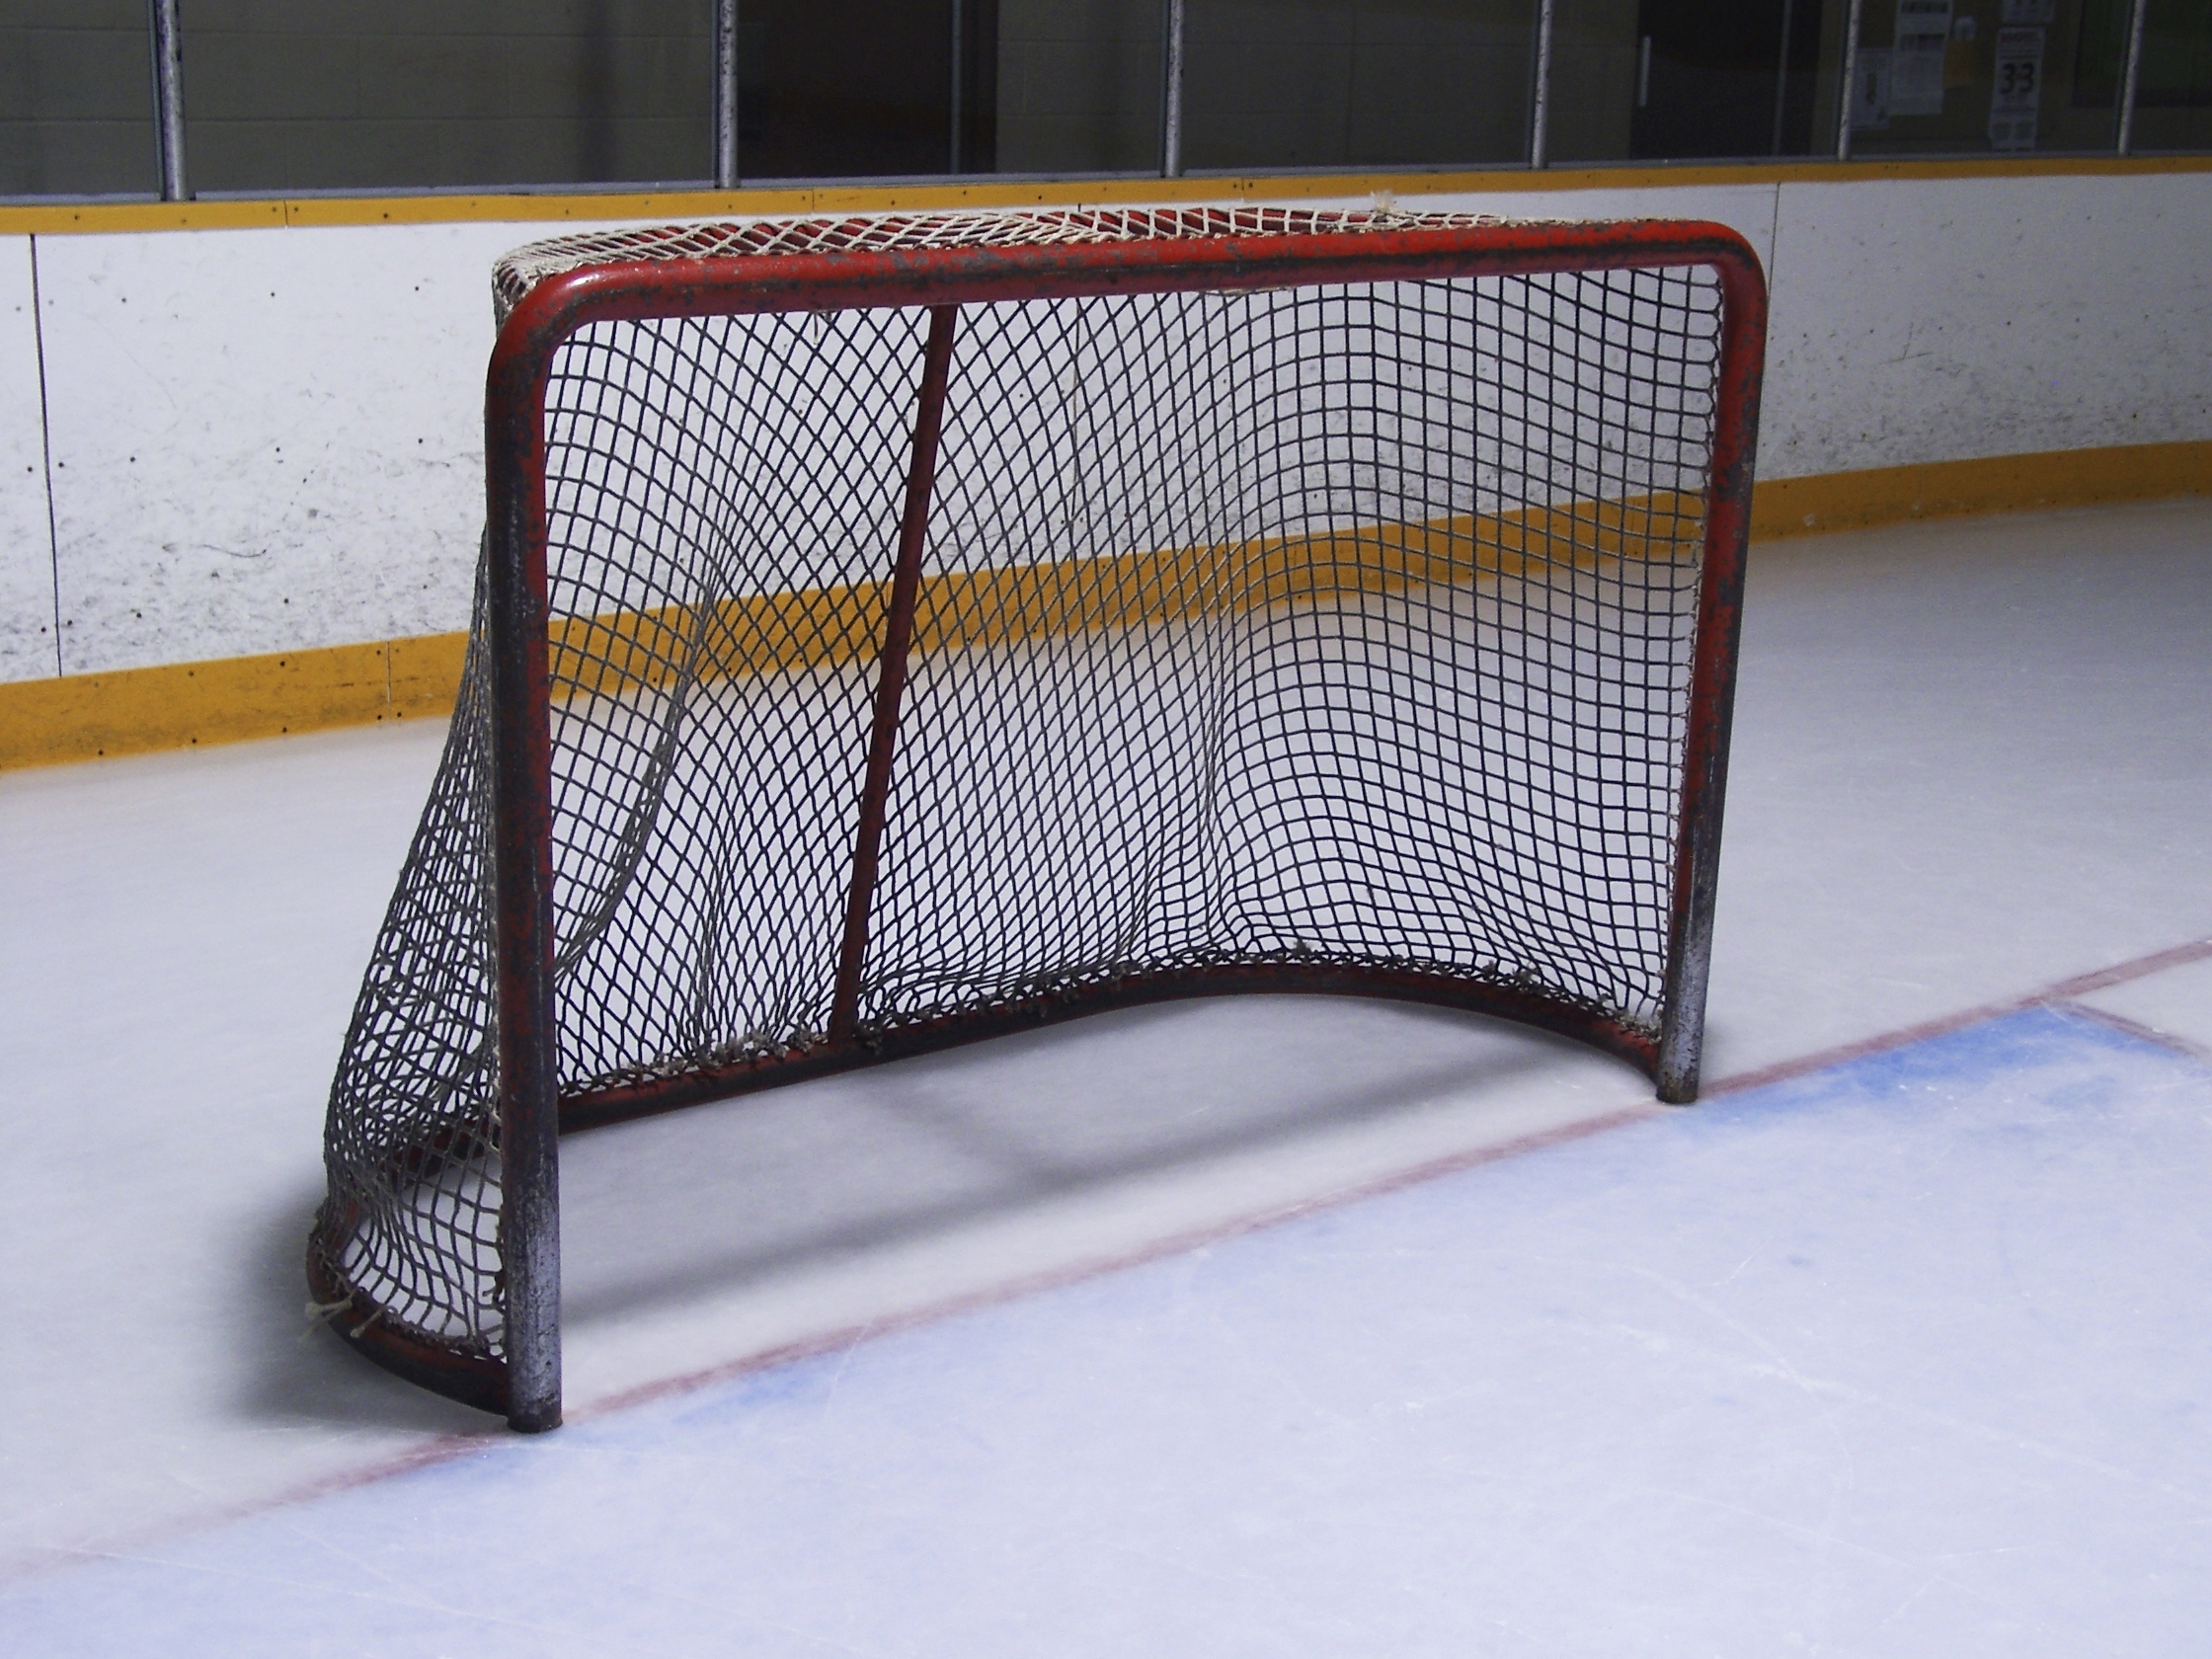 Hockey-Net